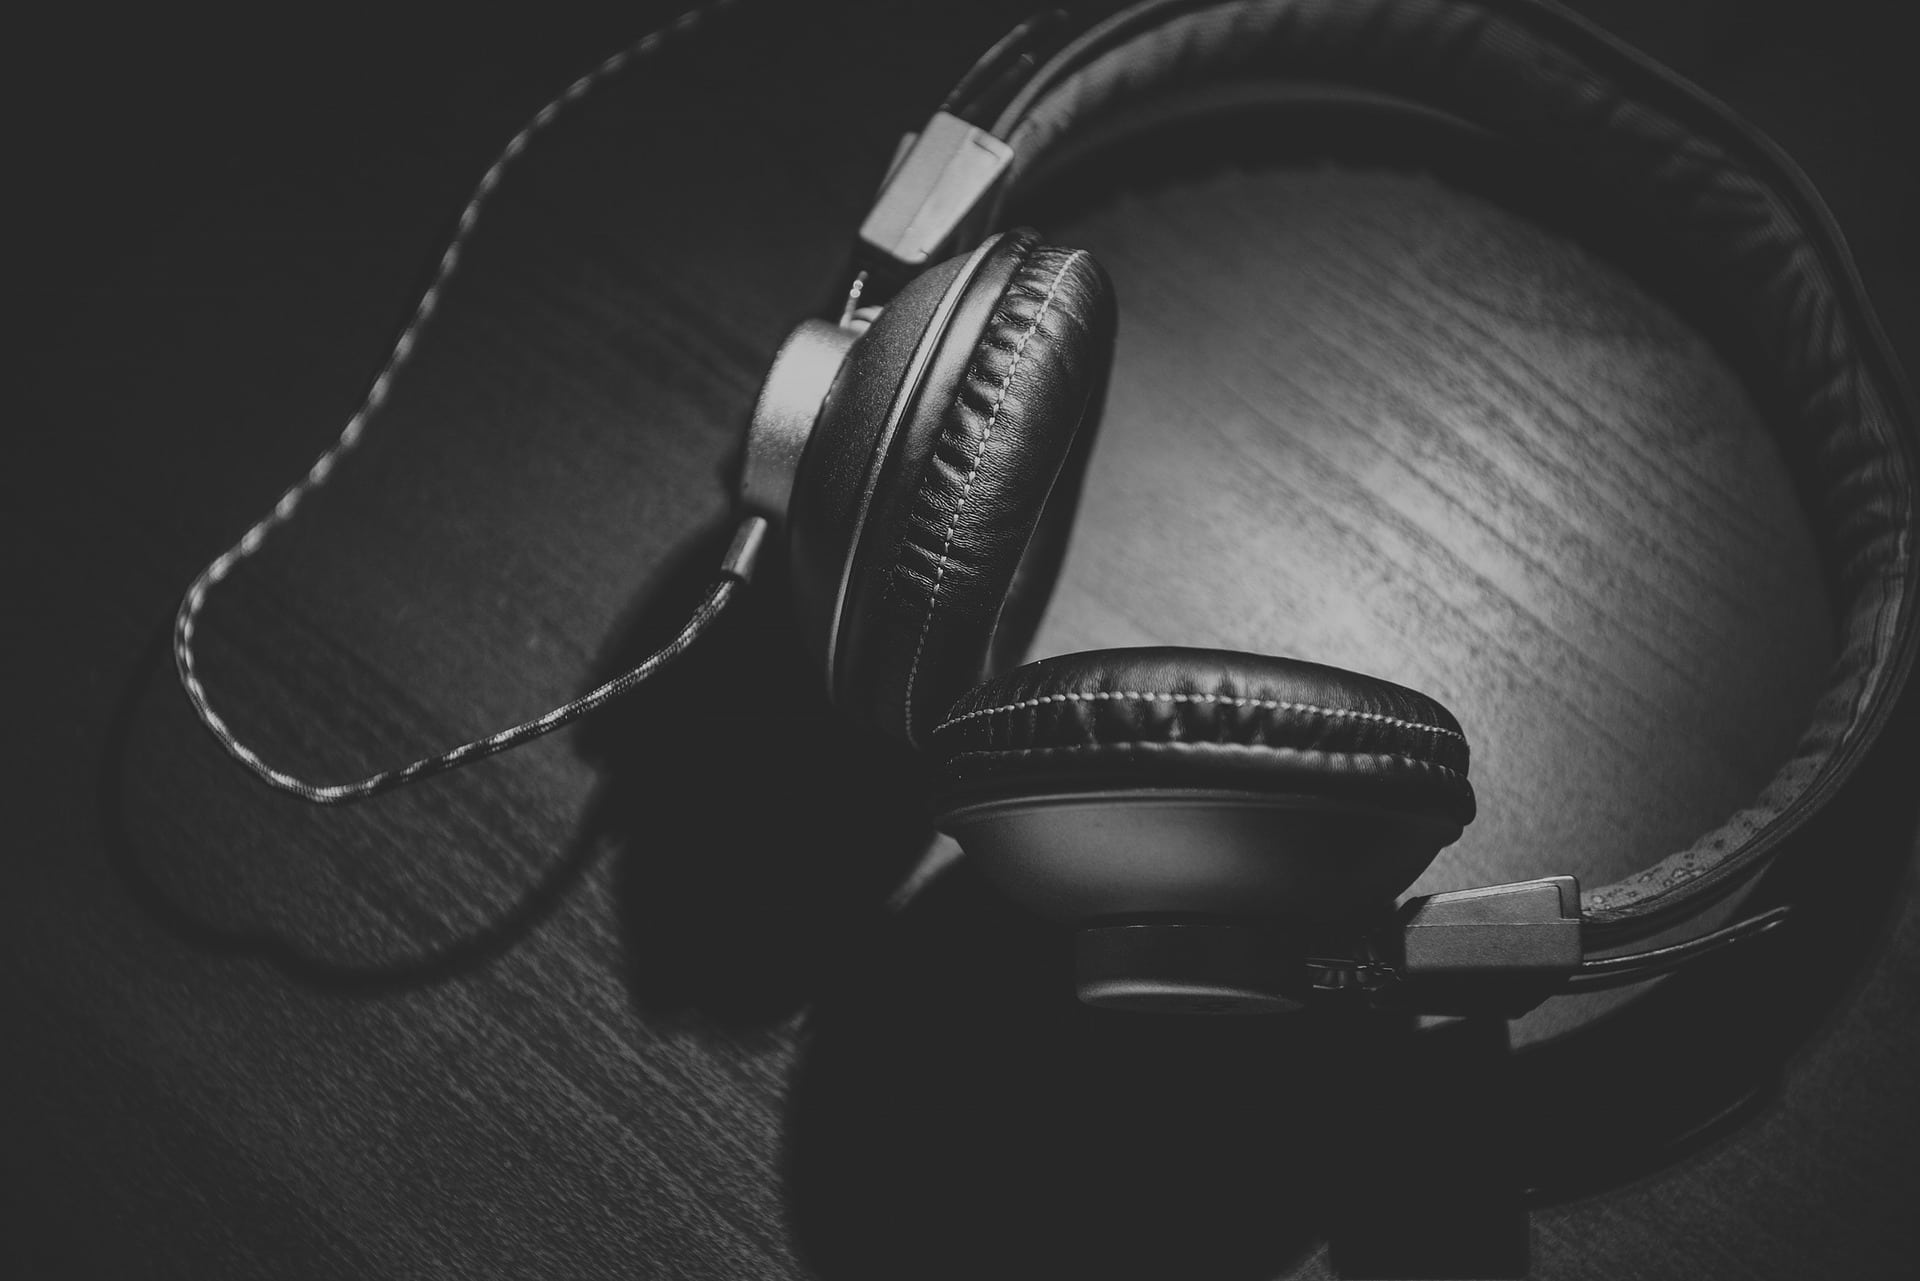 Best headsets for gaming and music [Top 7 Guide]